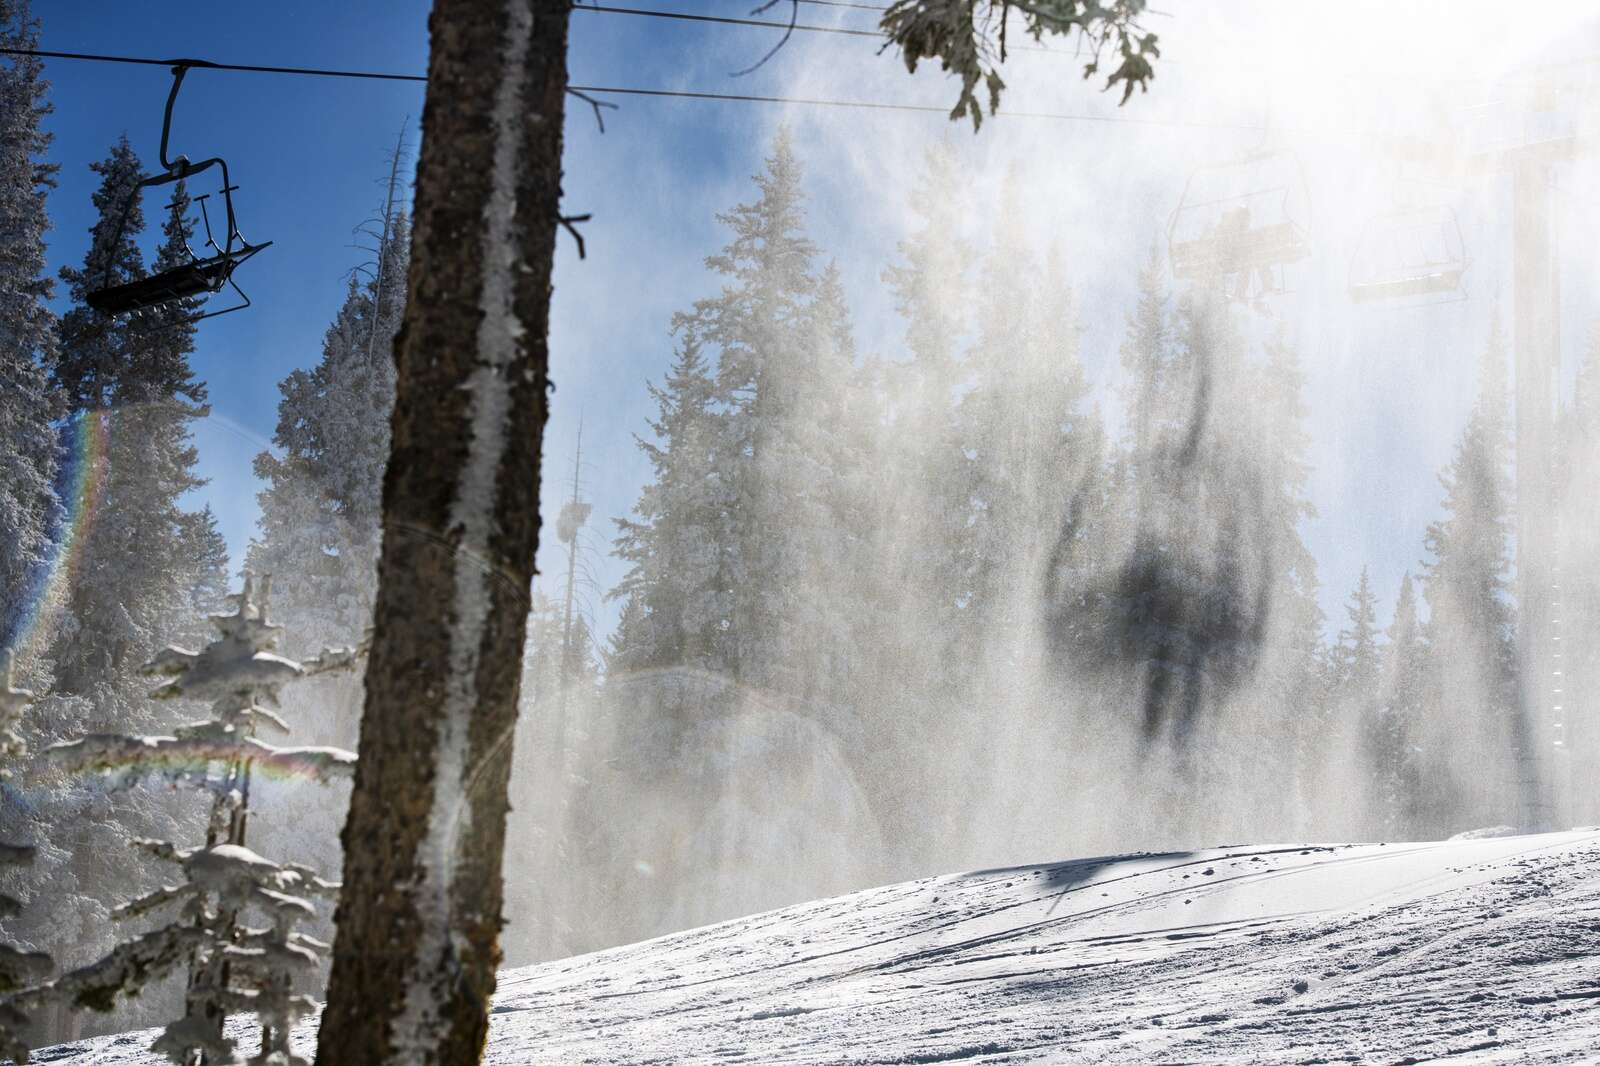 Skiers ride the Gents Ridge Lift while Aspen Skiing Company continues to make snow on opening day on Aspen Mountain on Wednesday, Nov. 25, 2020. (Kelsey Brunner/The Aspen Times)